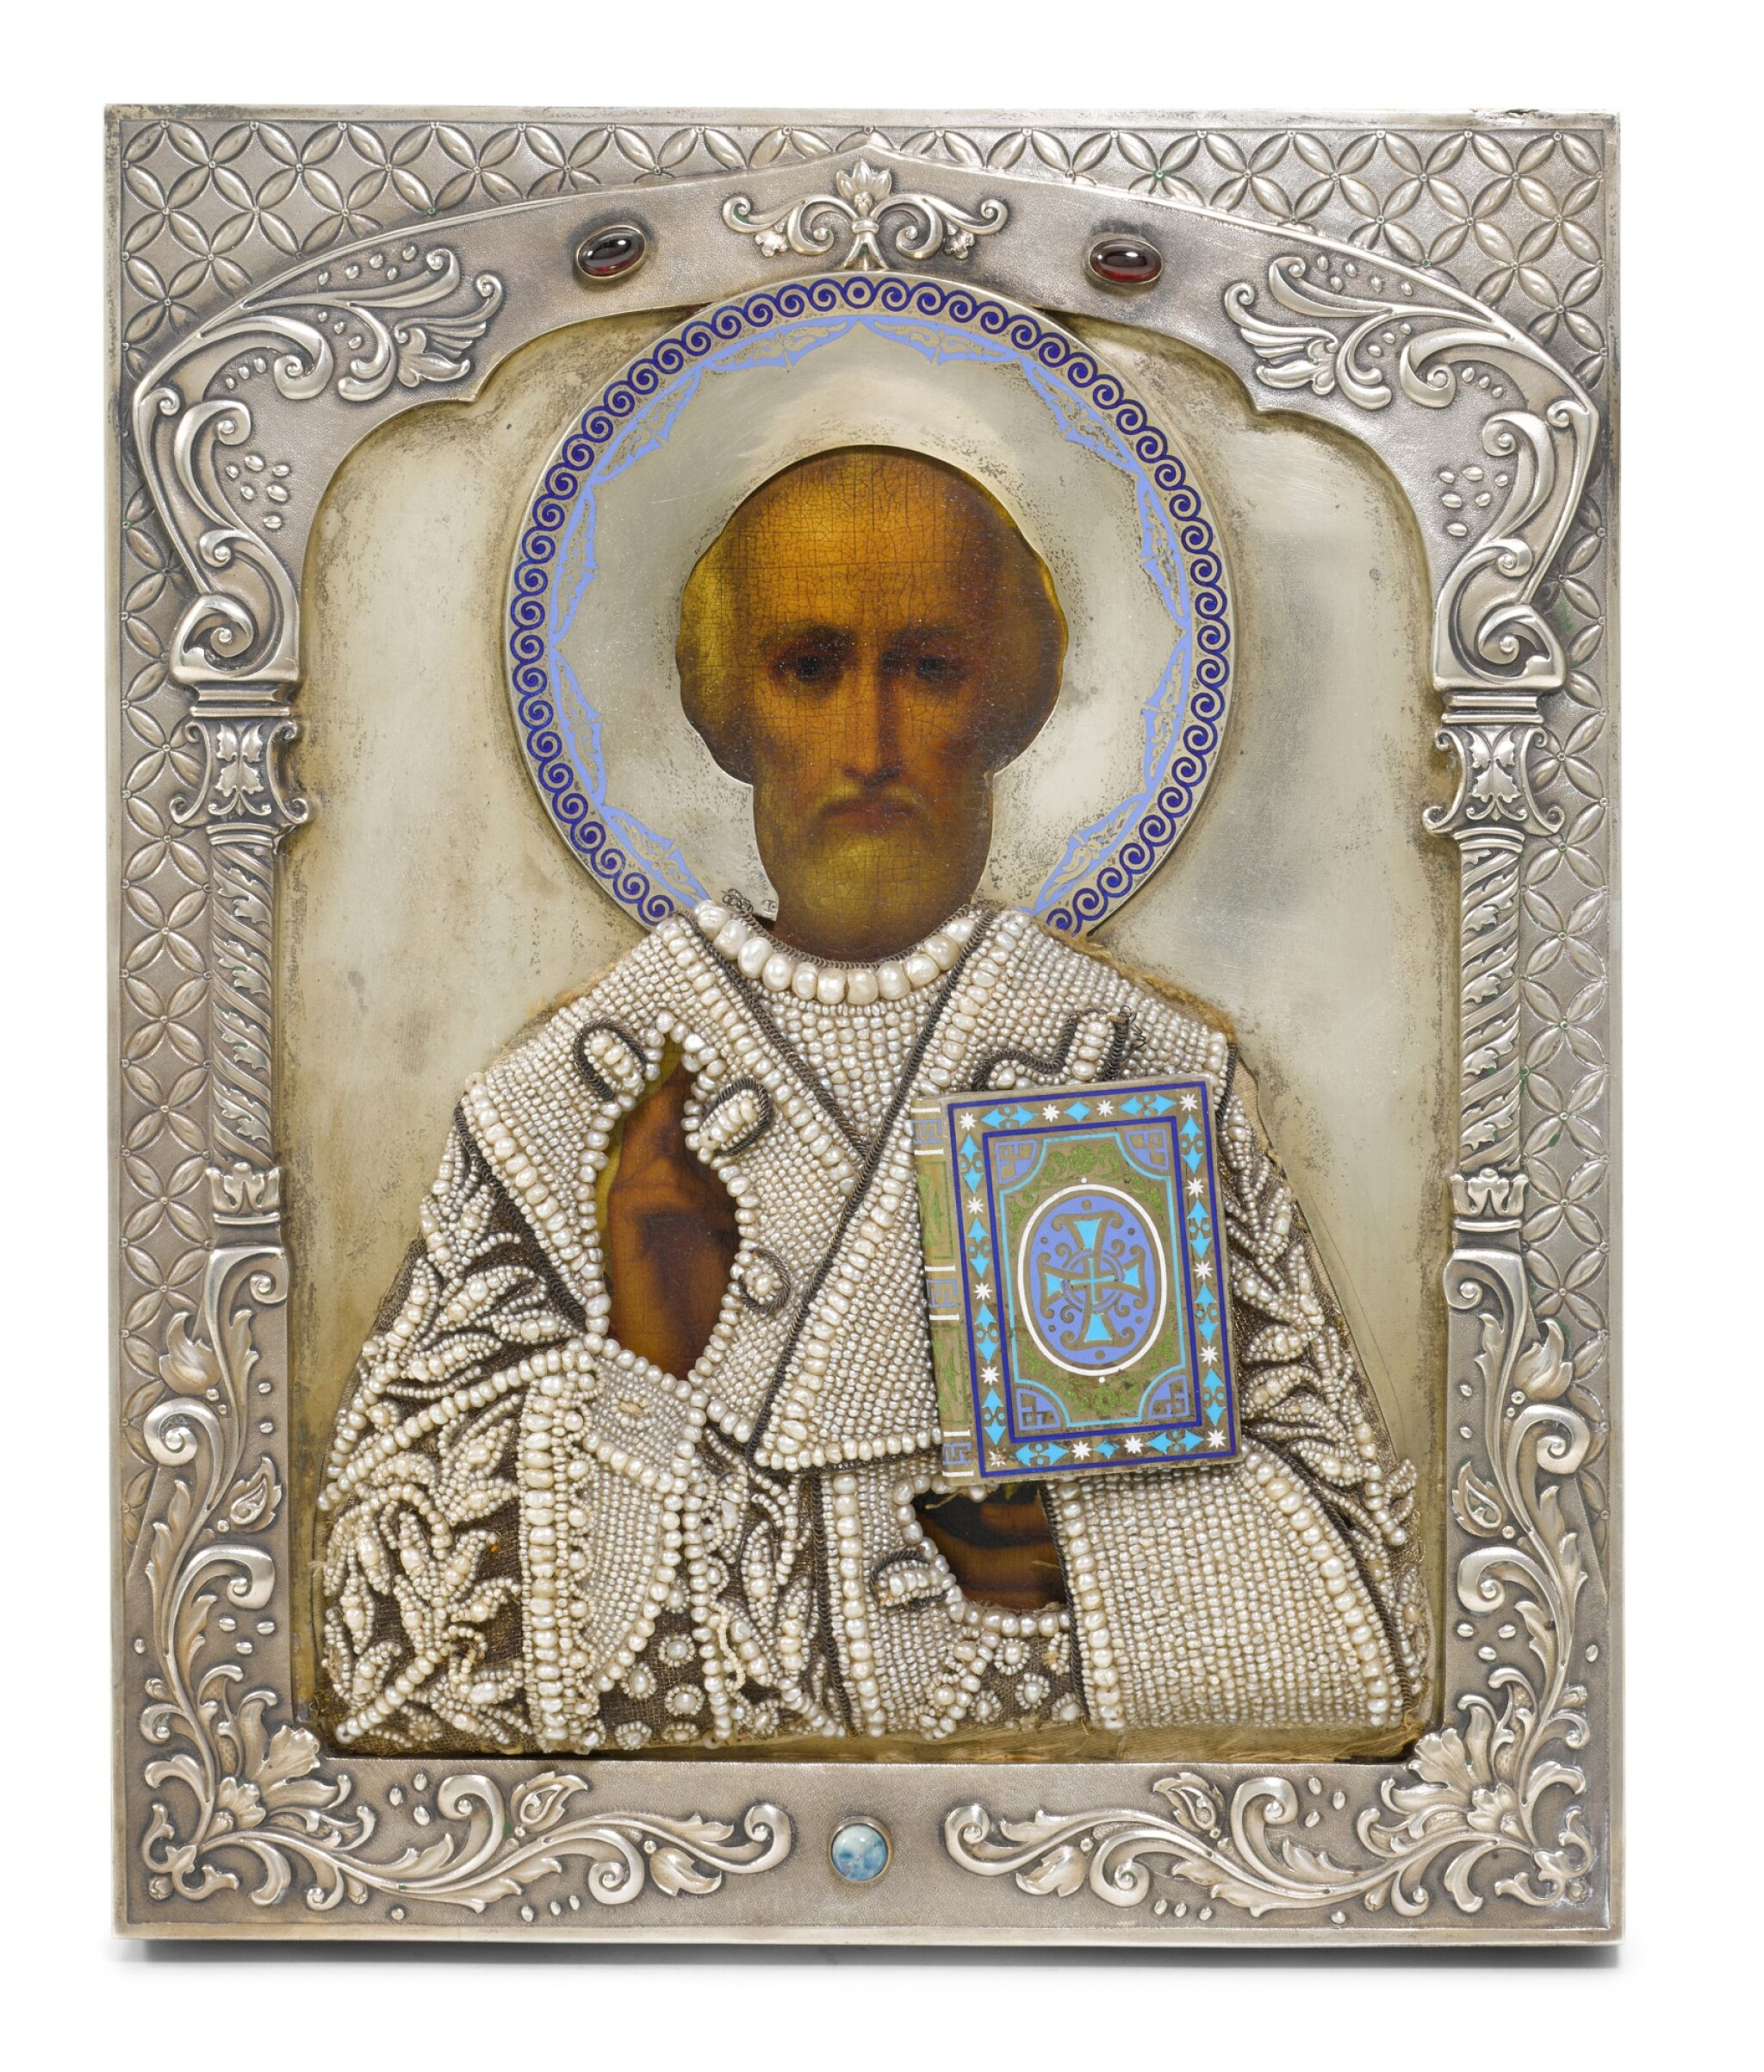 View full screen - View 1 of Lot 255. A gem-set, silver and champlevé enamel icon of Saint Nicholas, Dmitry Smirnov, Moscow, 1899-1908.